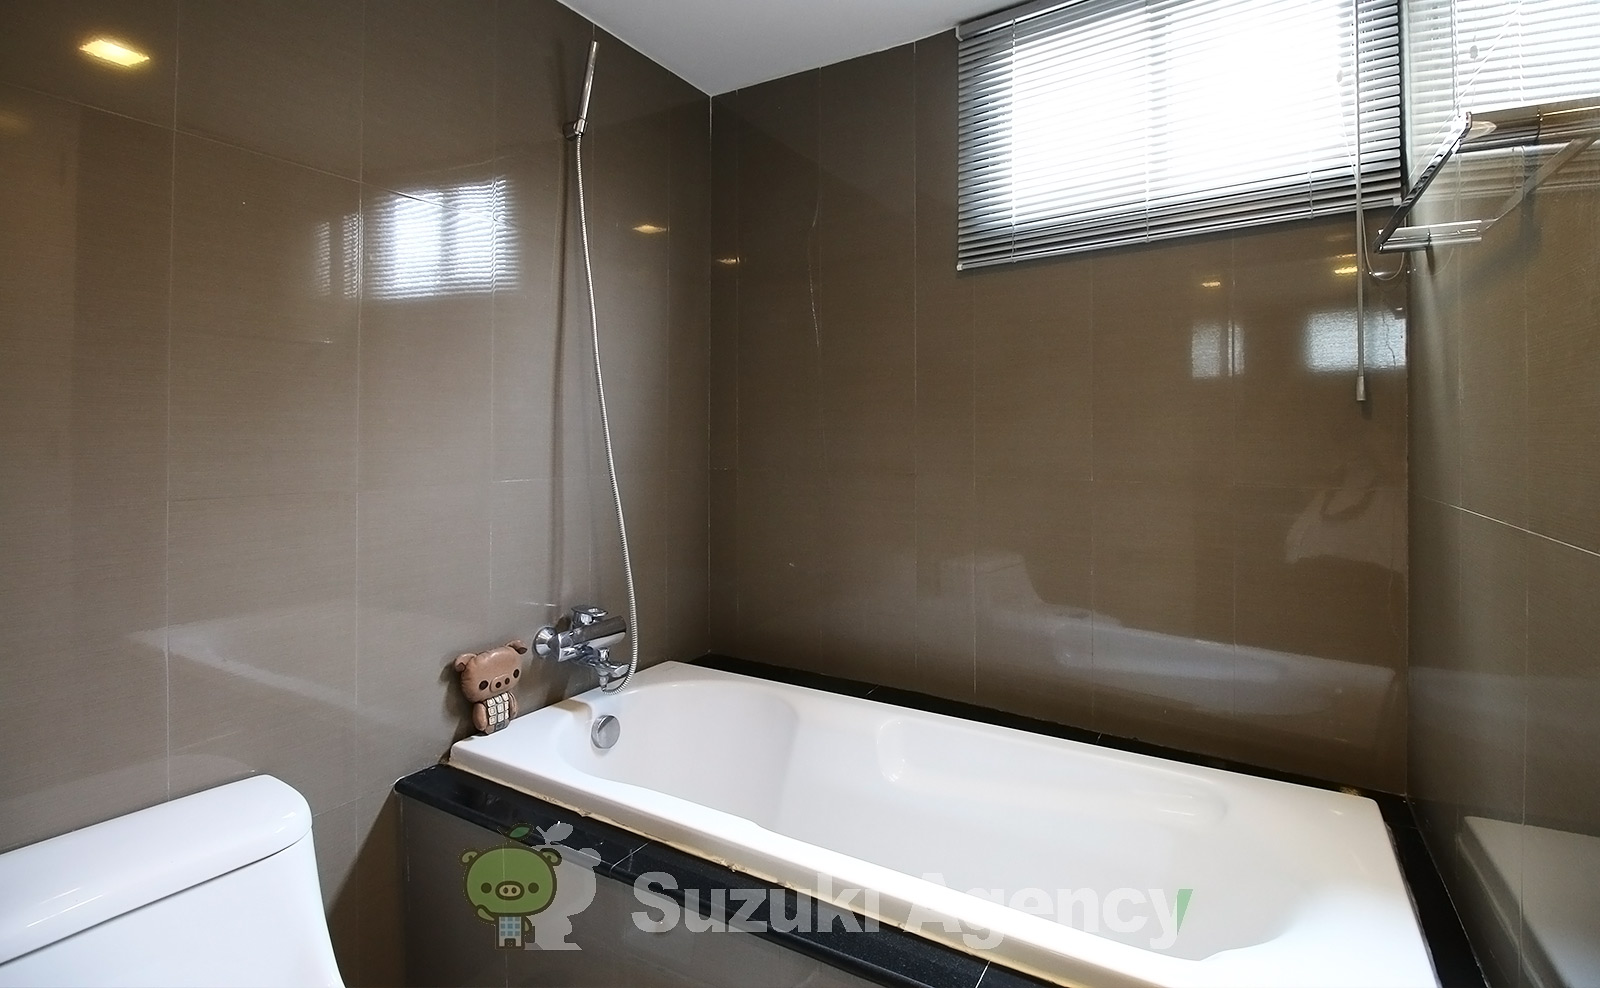 Prime Mansion Sukhumvit 31:2Bed Room Photos No.11